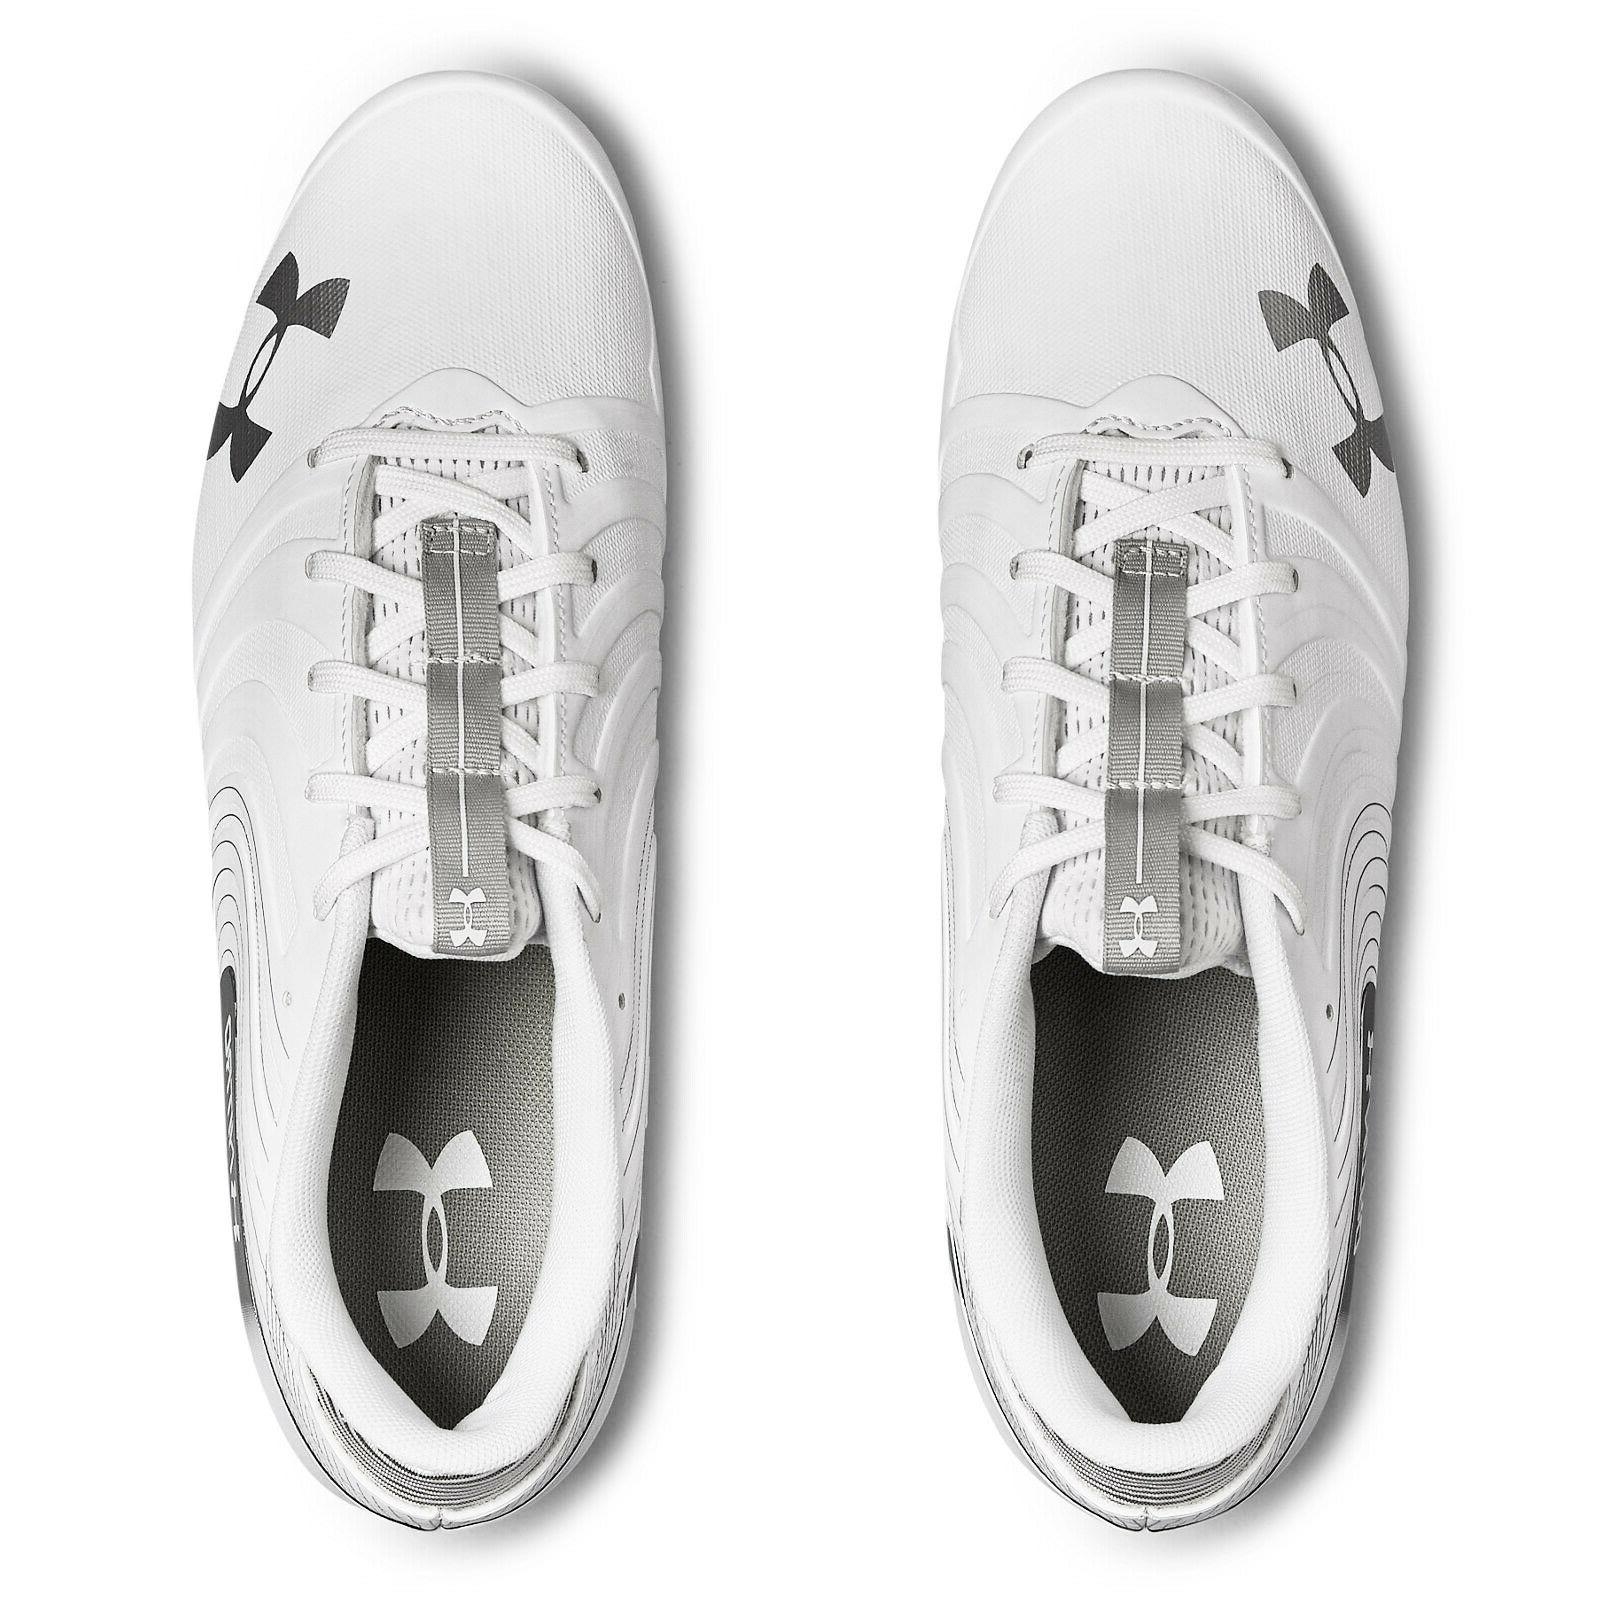 UNDER UA LOW MC Cleats Silver SIZE